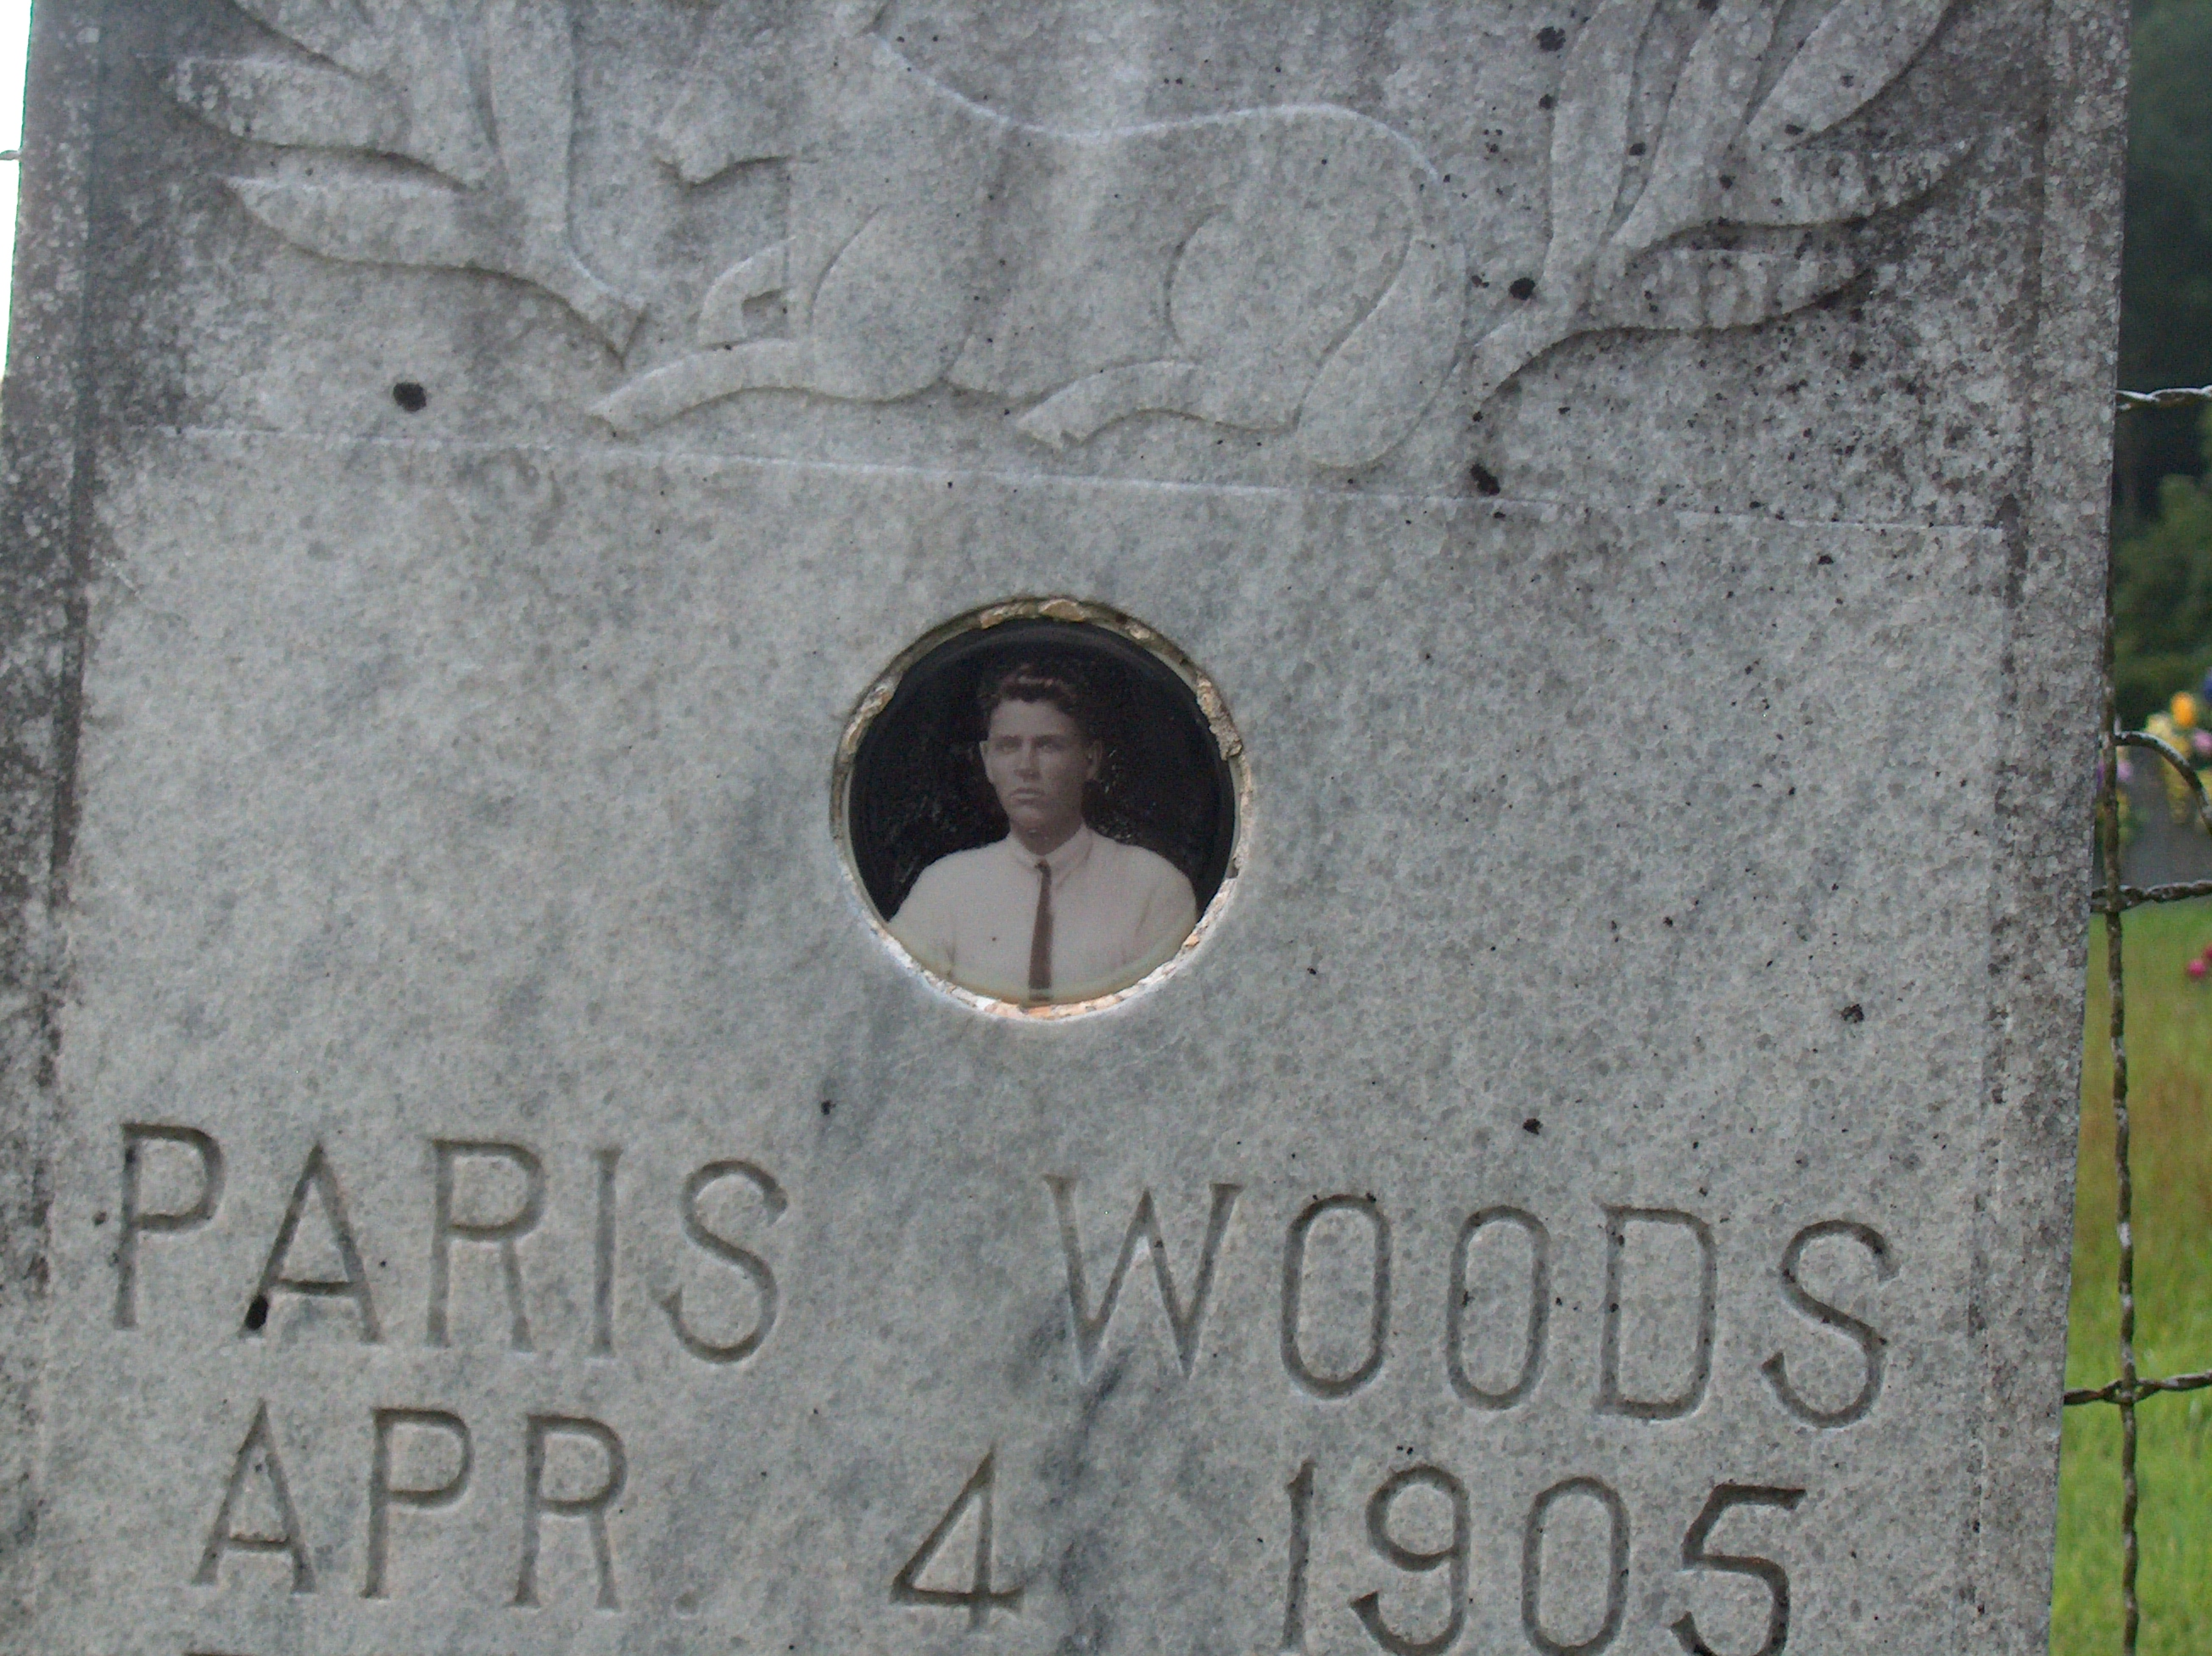 Grave of Paris Woods with an embedded photo